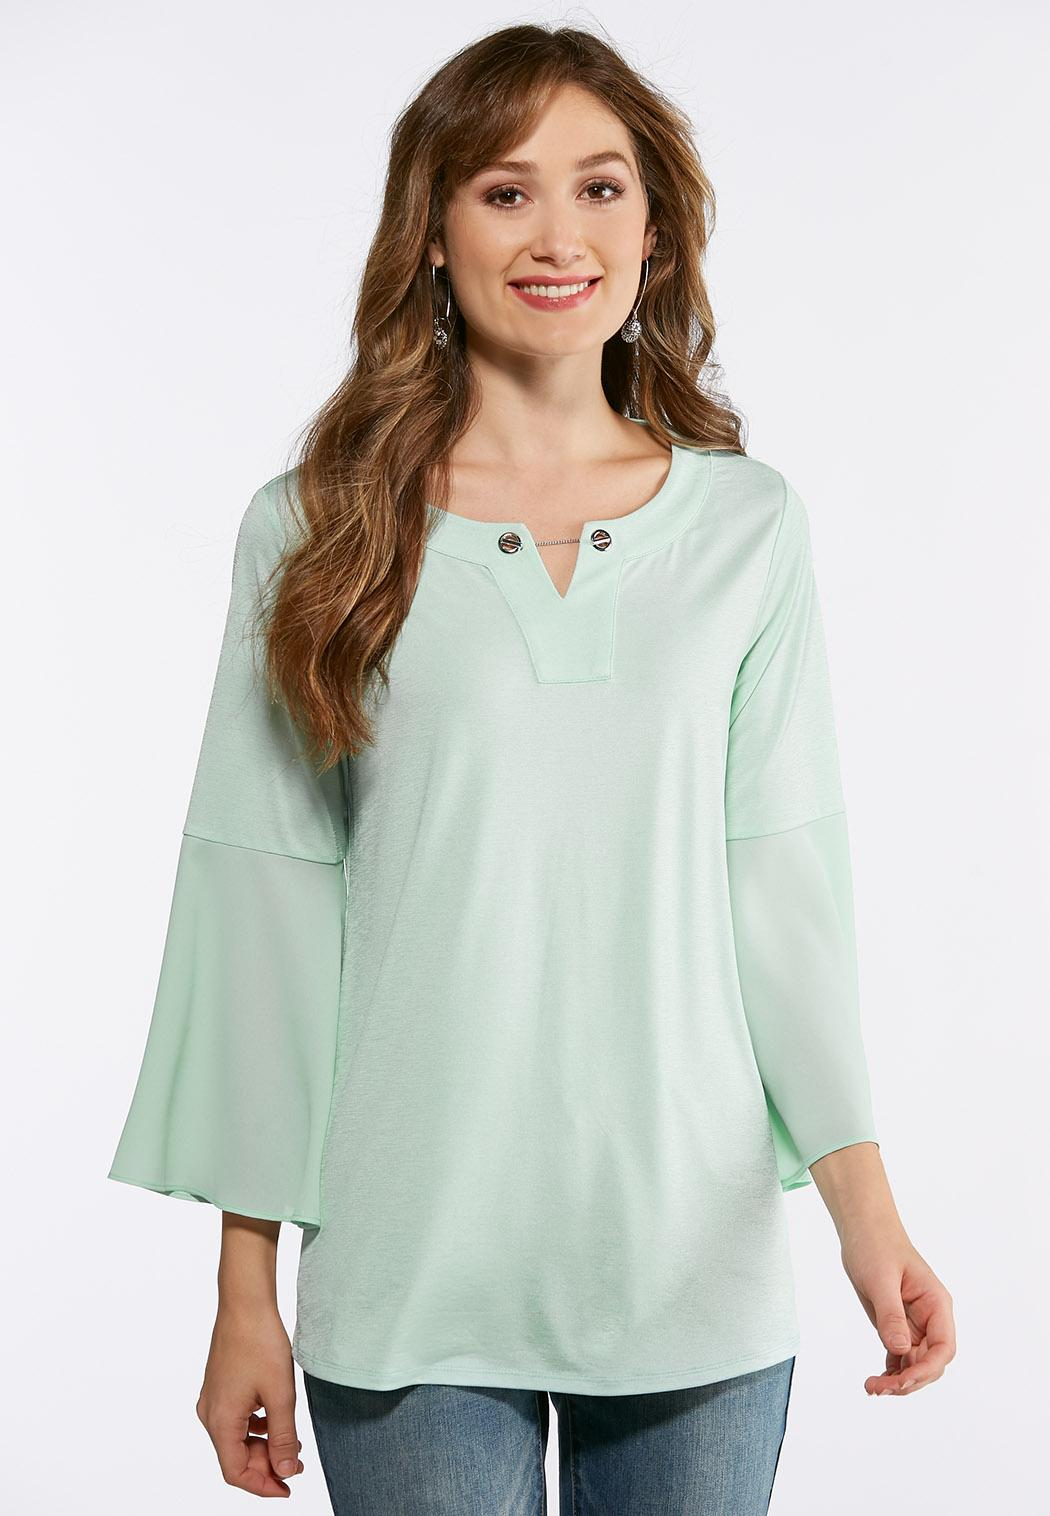 742650f11b2 Embellished Bell Sleeve Top alternate view Embellished Bell Sleeve Top